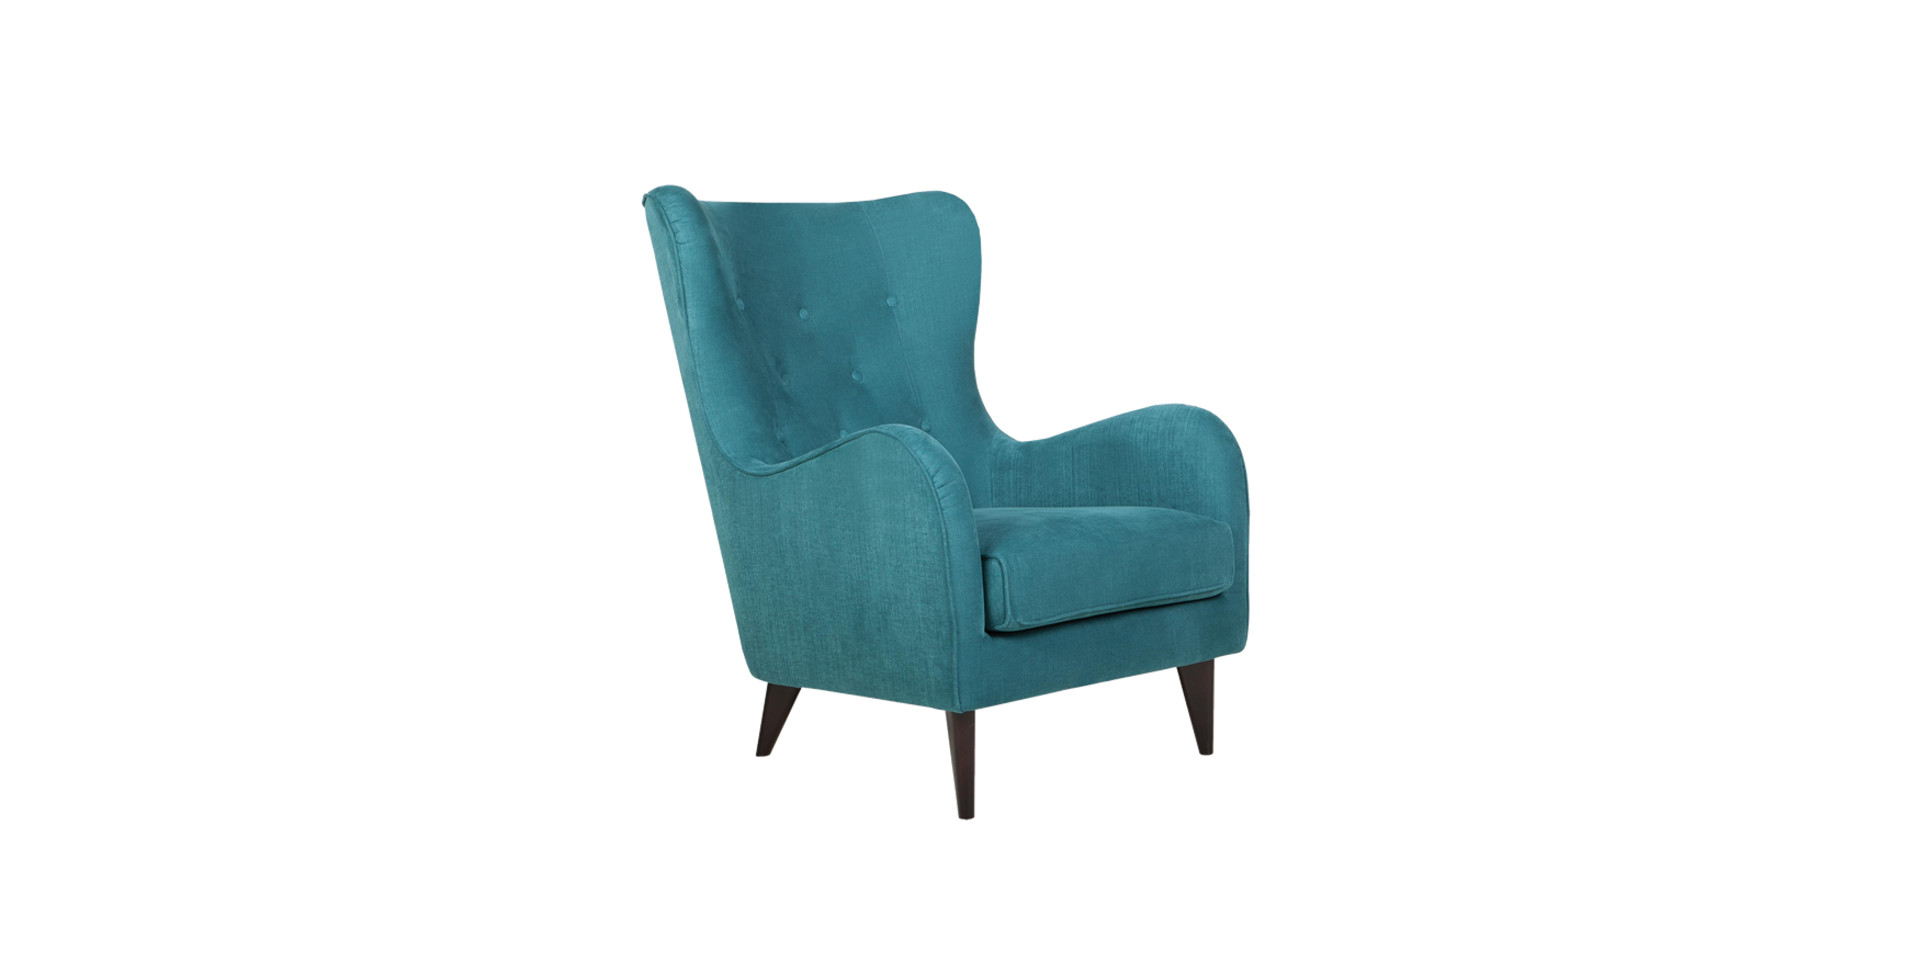 sits-pola-fauteuil-armchair_caleido1551_turquoise_2_0